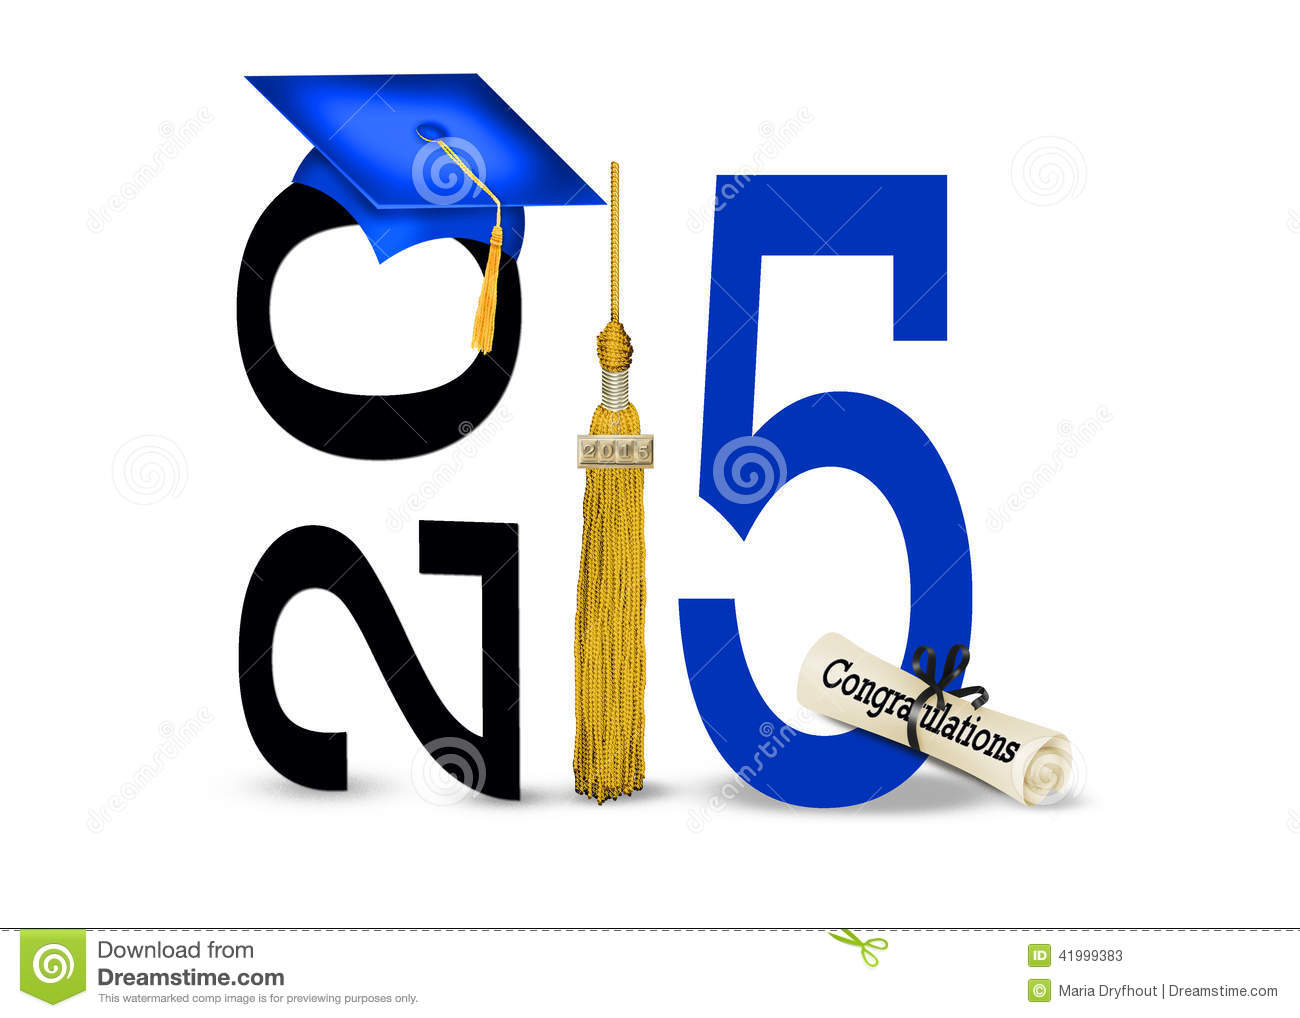 Blue graduation hat with gold tassel and diploma for class of 2015.